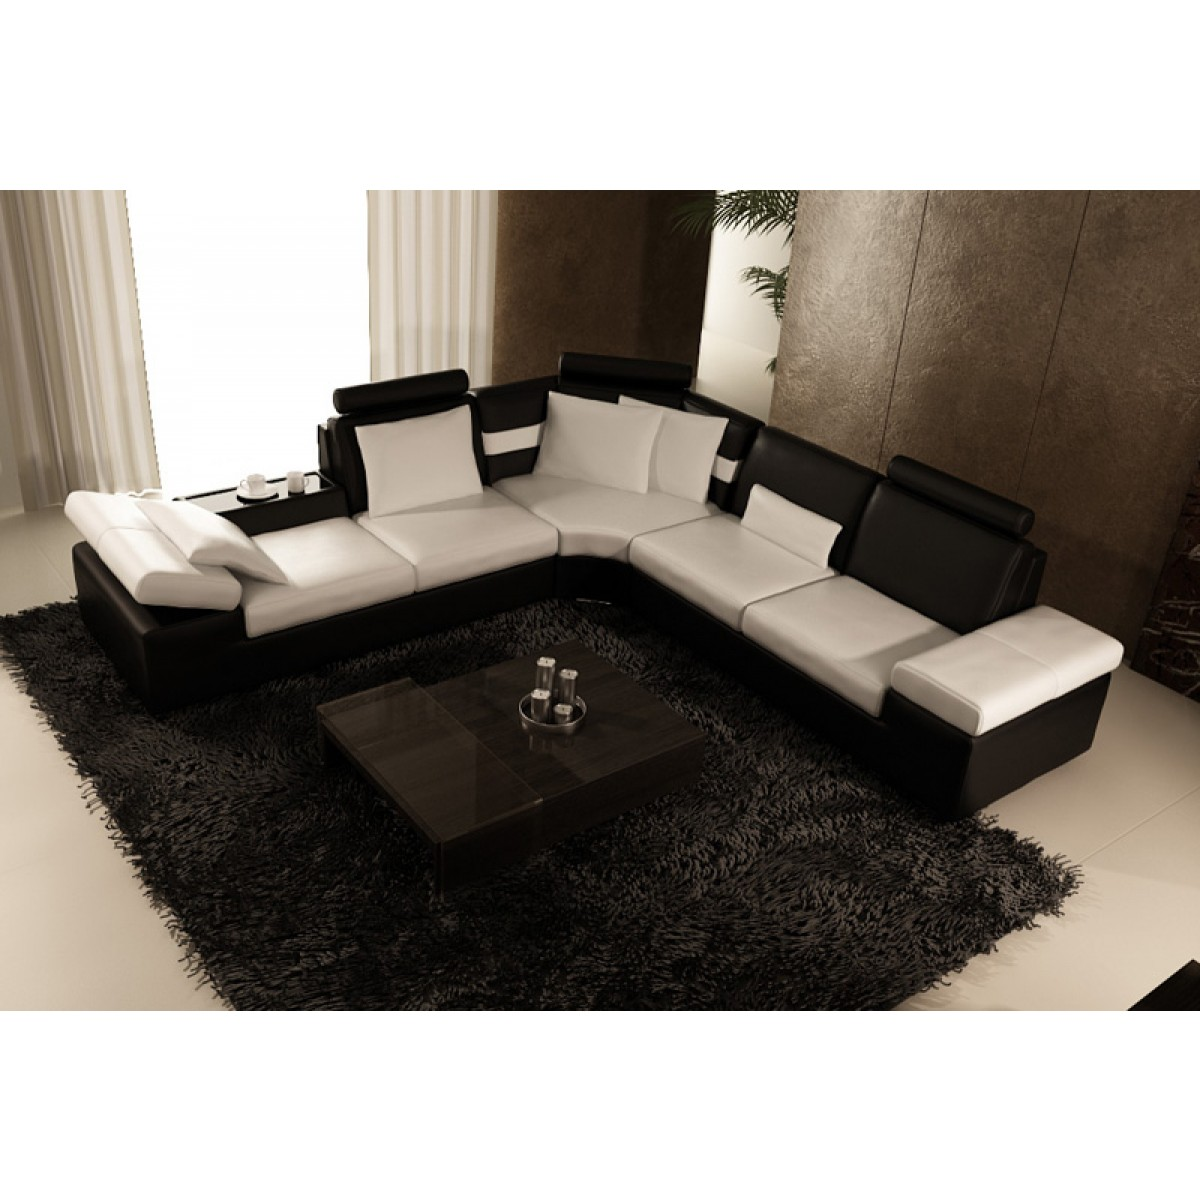 canap d 39 angle design en cuir pleine fleur monaco pop. Black Bedroom Furniture Sets. Home Design Ideas